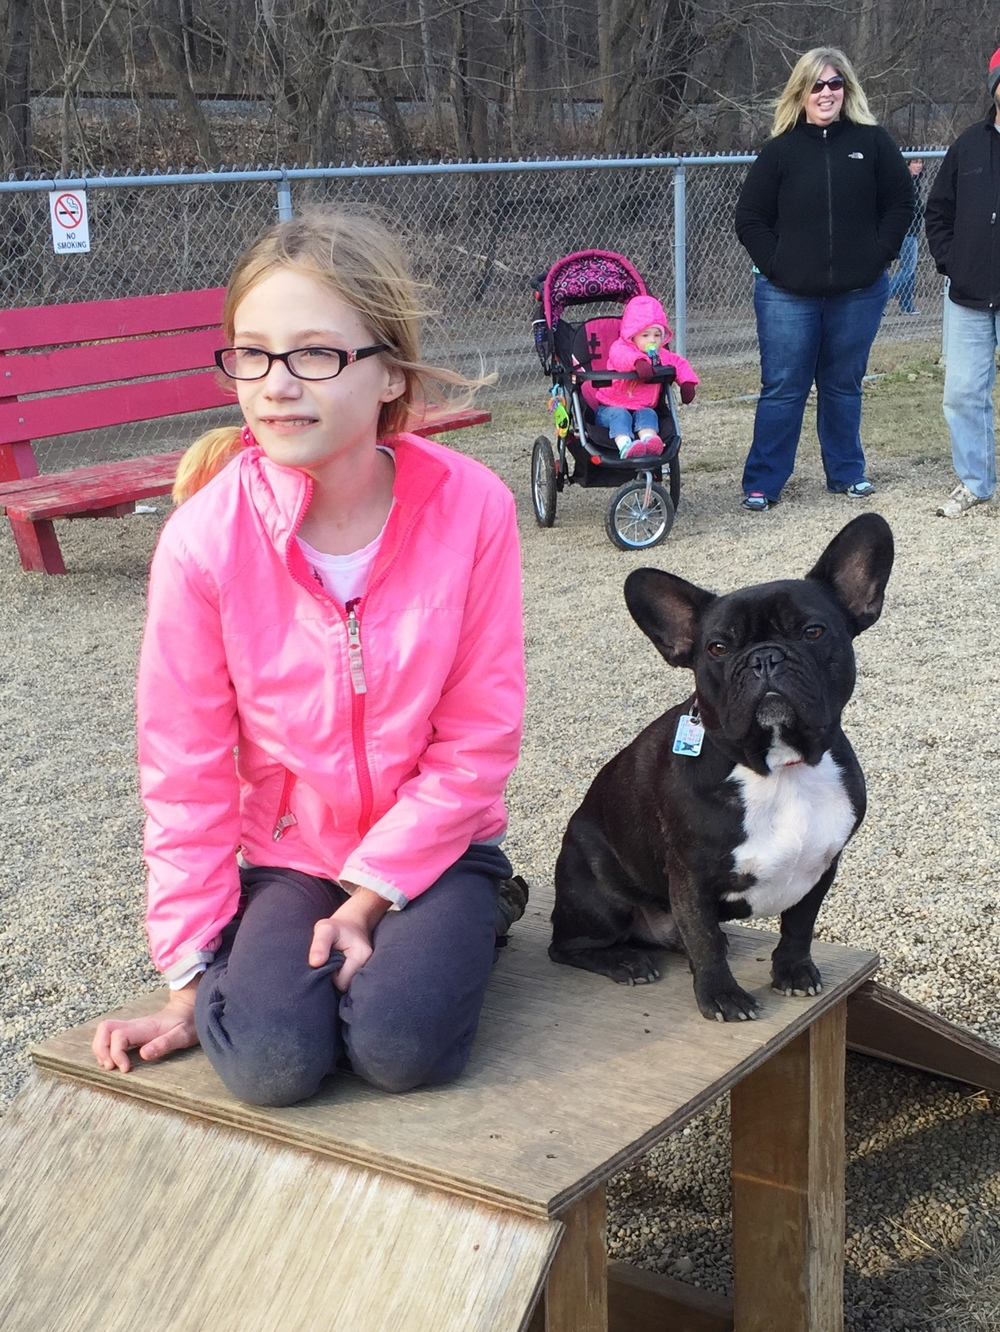 happy heart mission for james rice akron ohio dog park u2014 archie